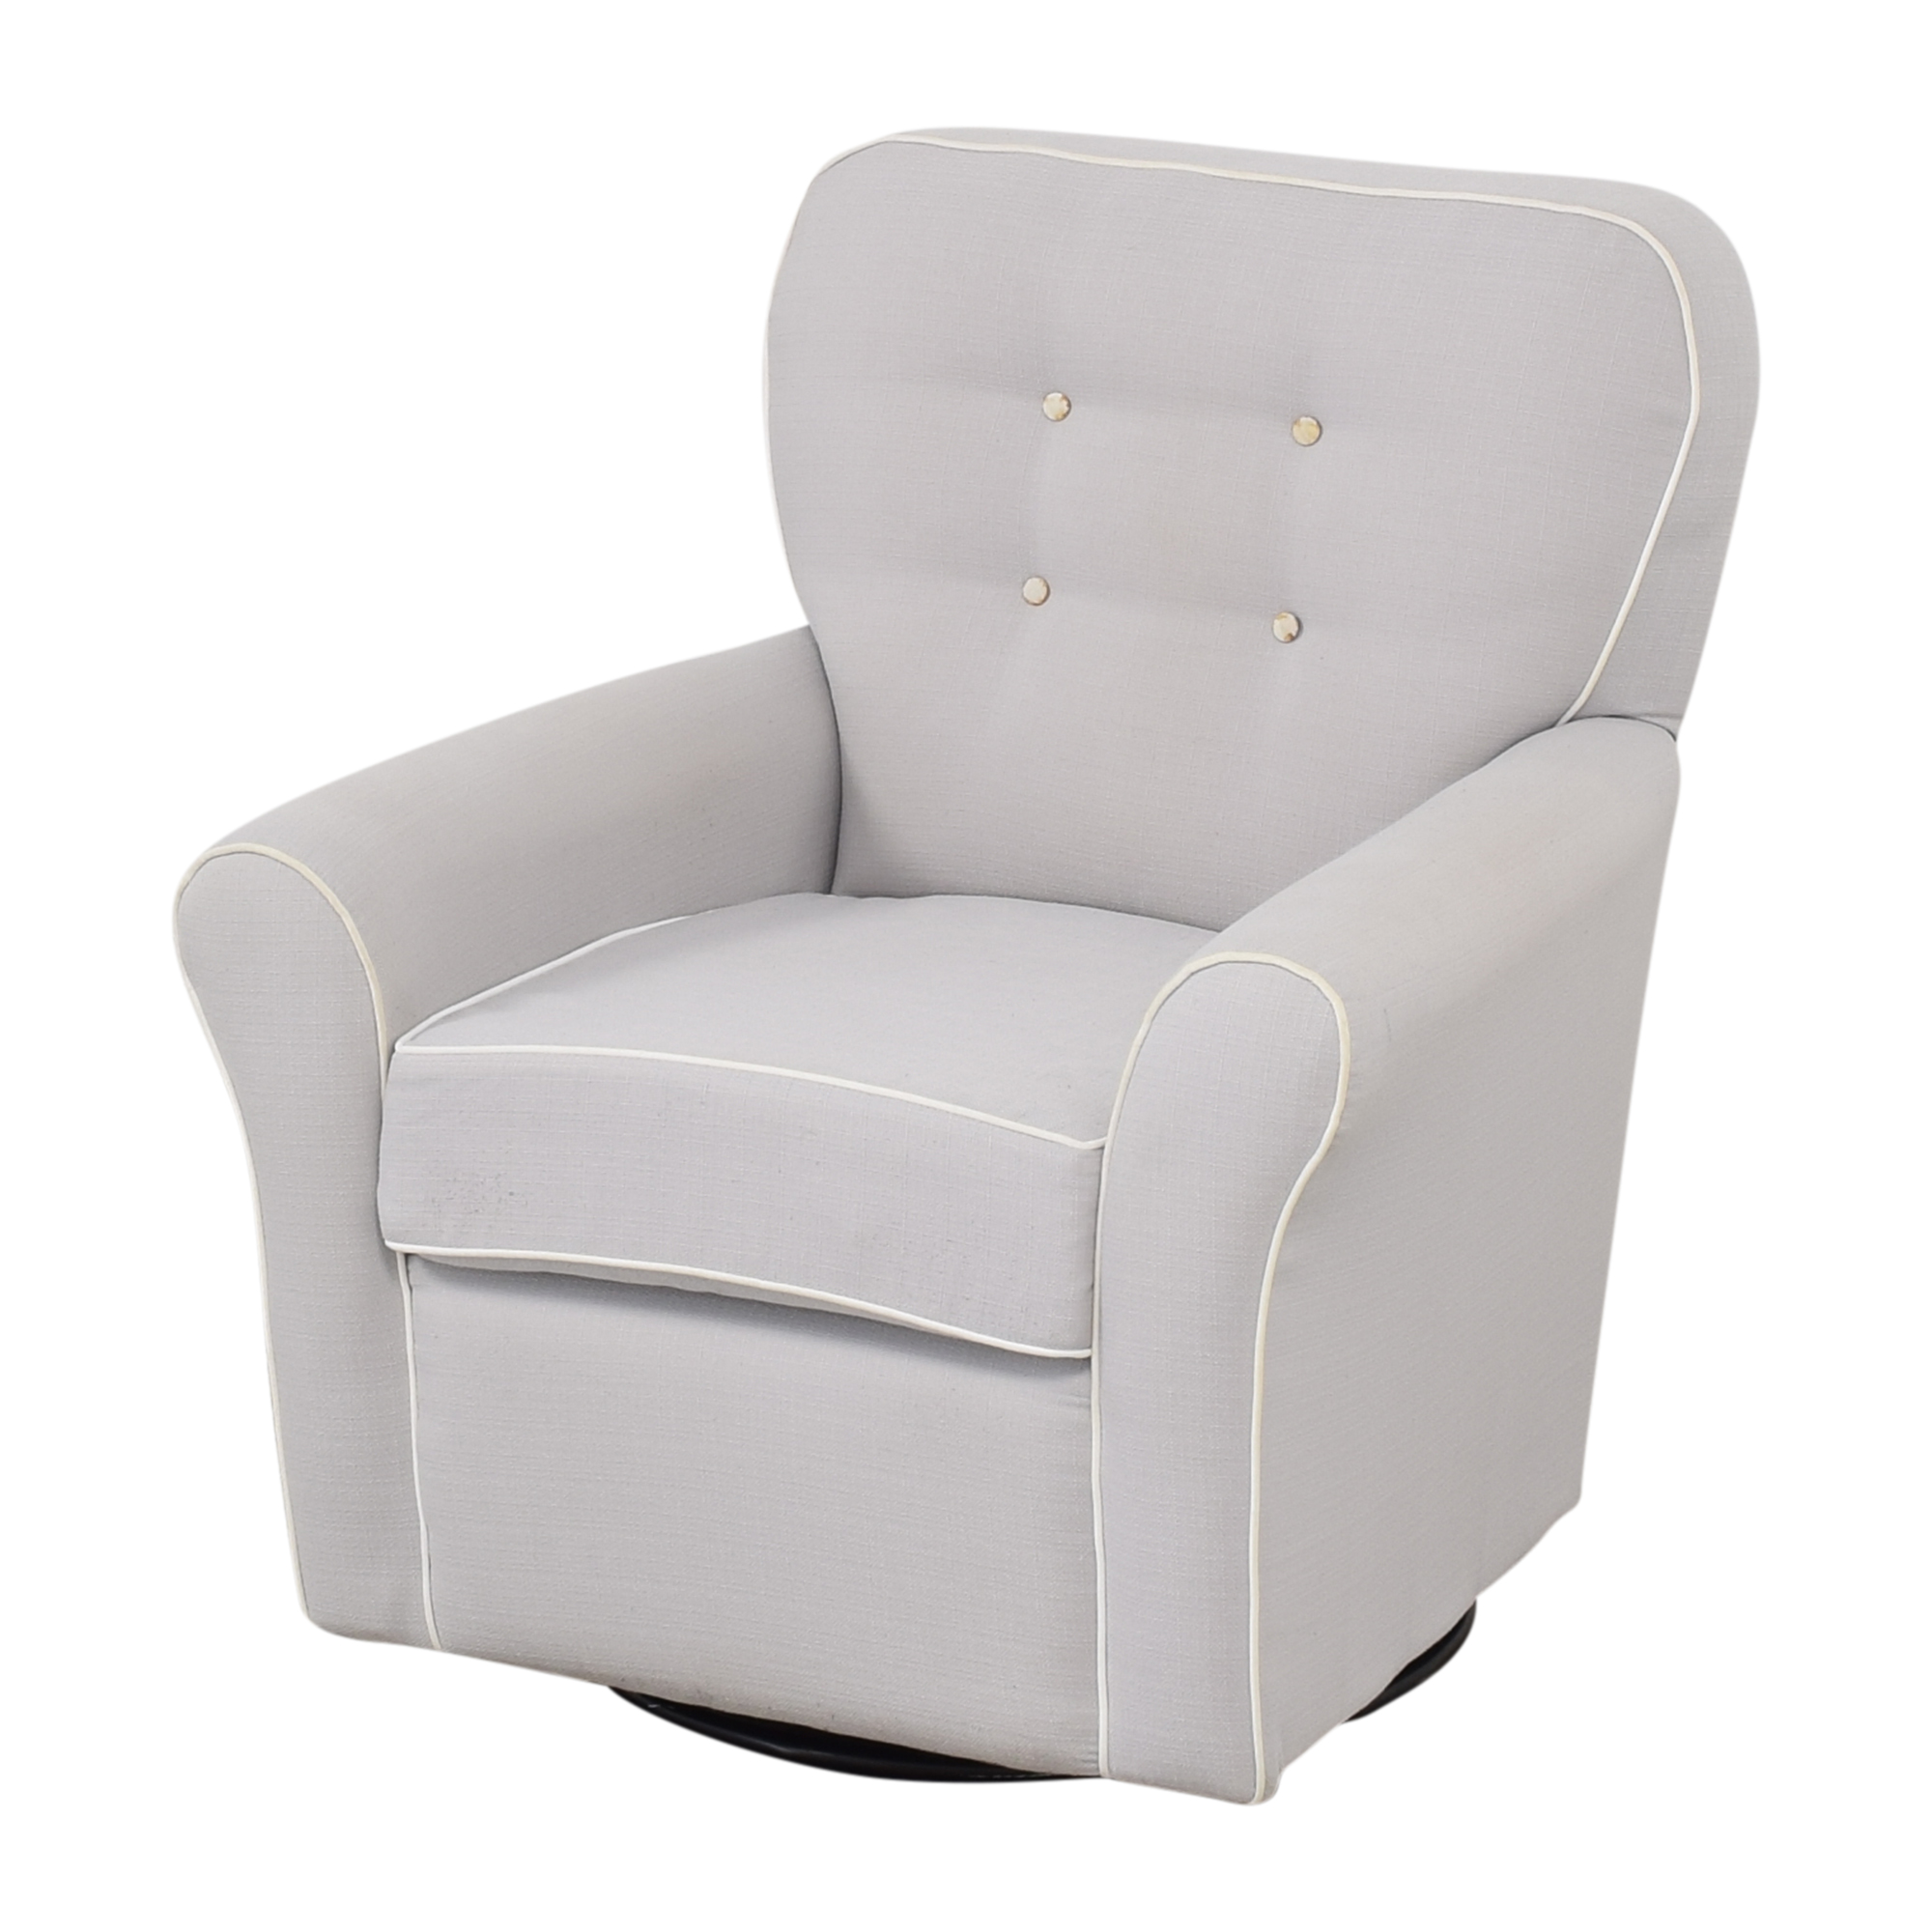 buy Tufted Glider Swivel Rocker Chair